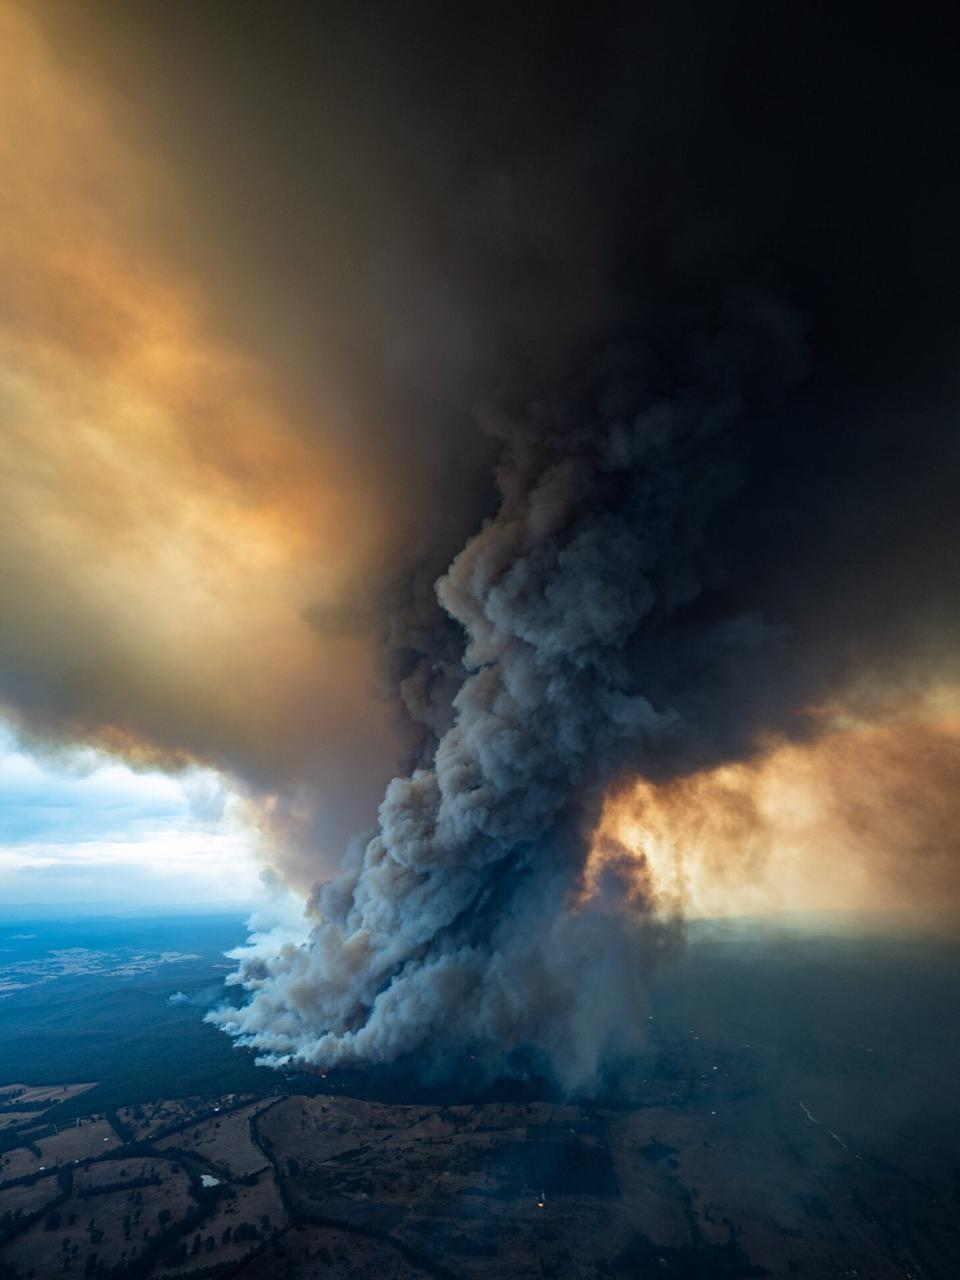 An arial shot shows smoke billowing from a fire burning at East Gippsland, Victoria.